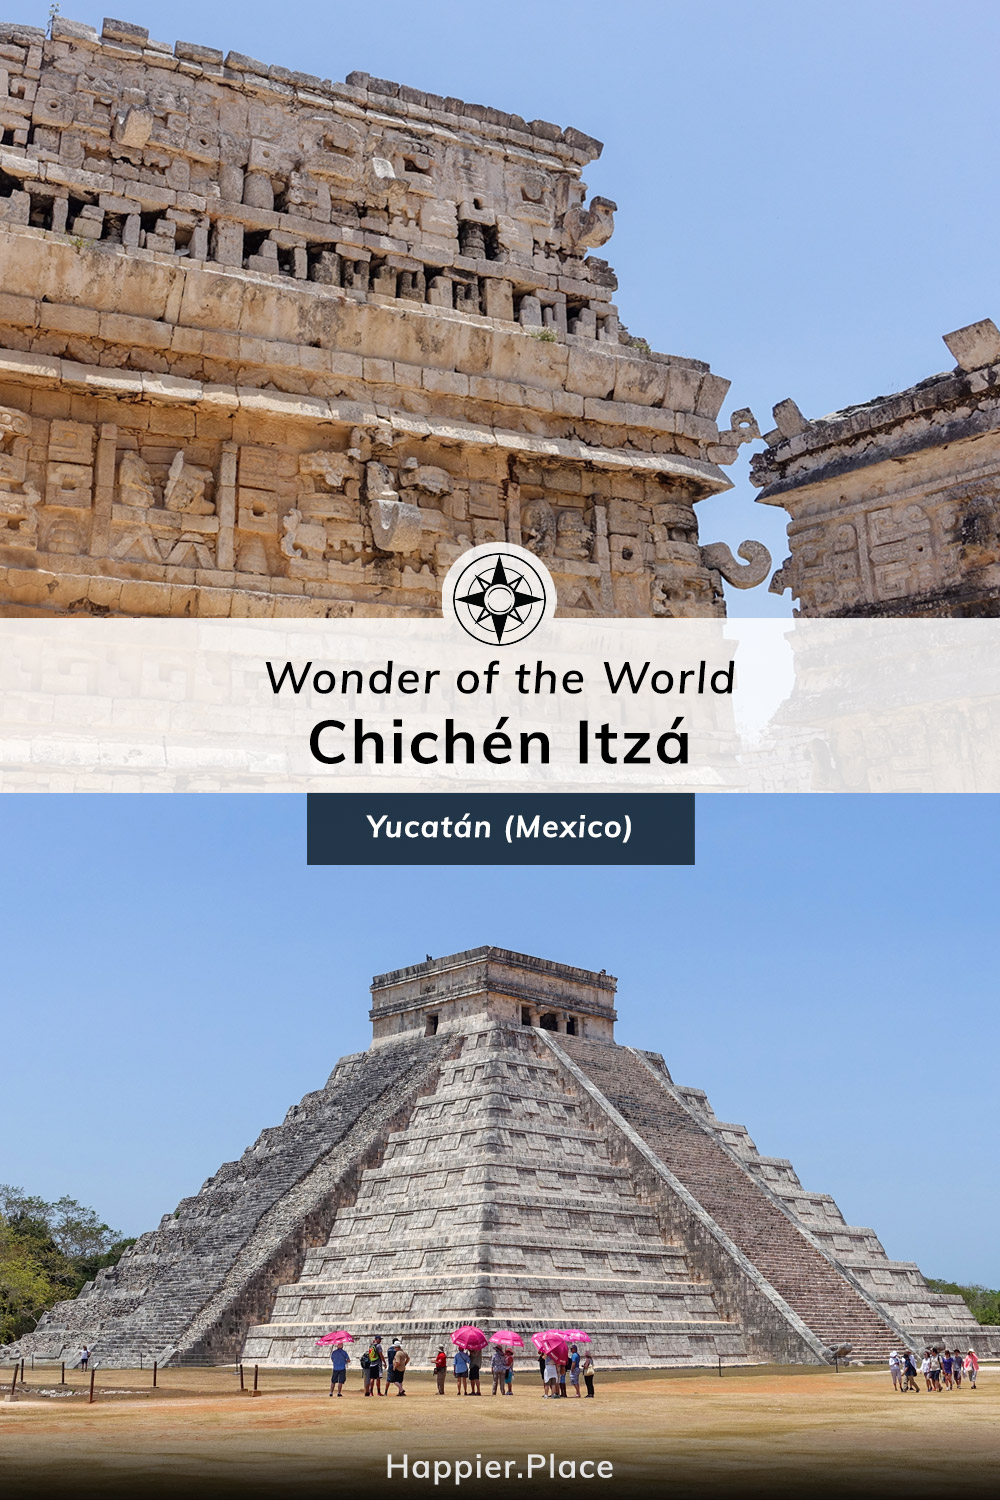 Wonder of the World, Chichen Itza pyramid El Castillo, Temple of Kukulkan, La Iglesia, Las Monjas Group, Yucatan, Mexico, Happier Place